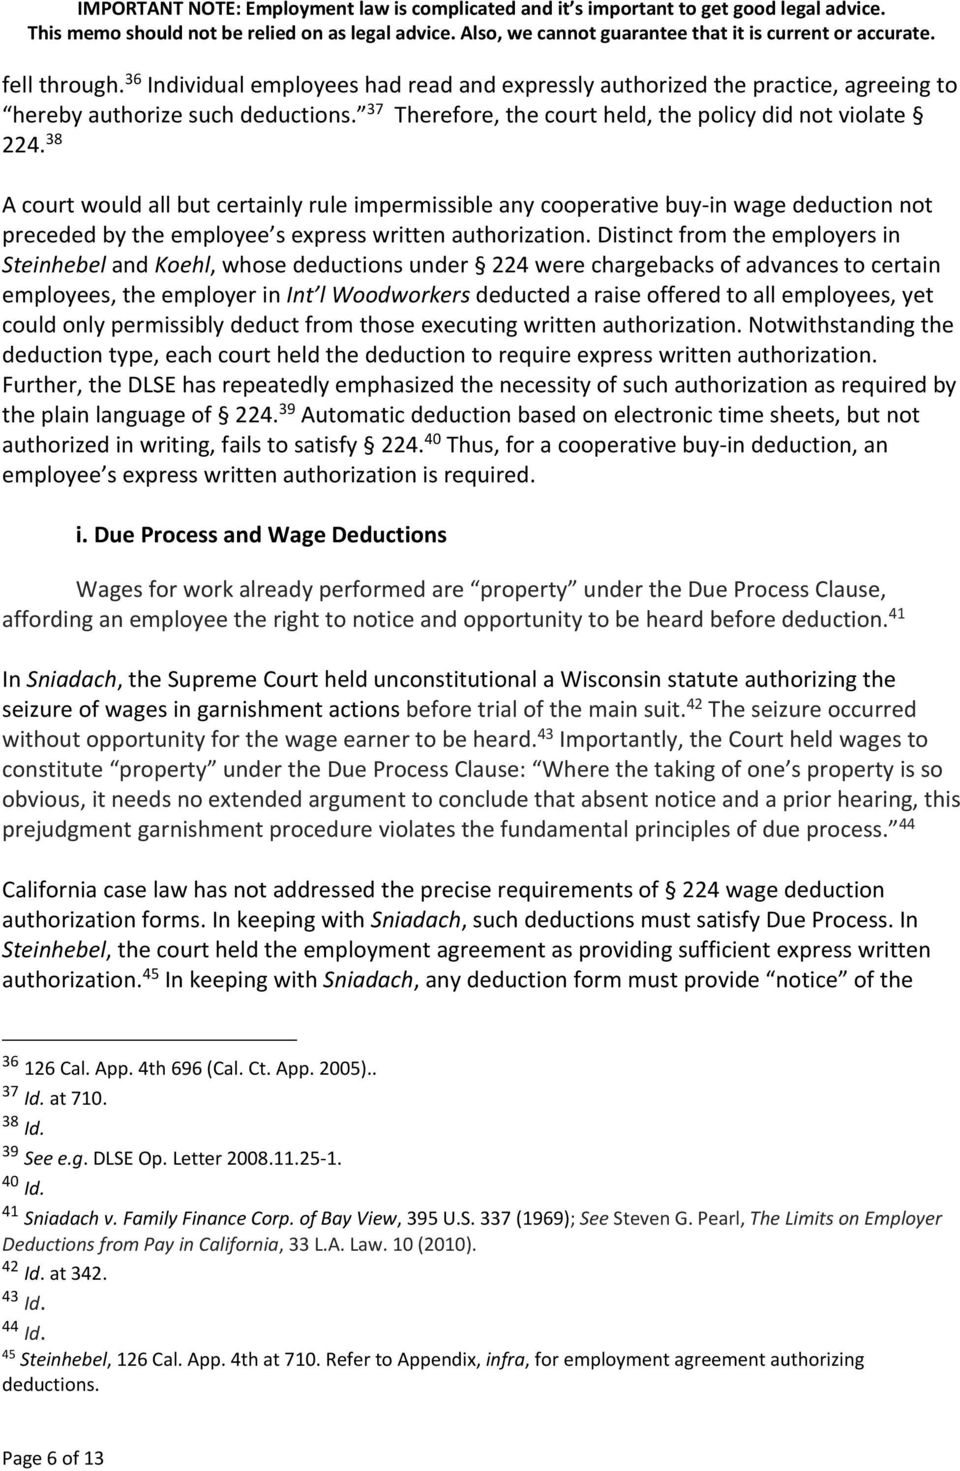 Memo on Deducting Worker Cooperative Capital Contributions from